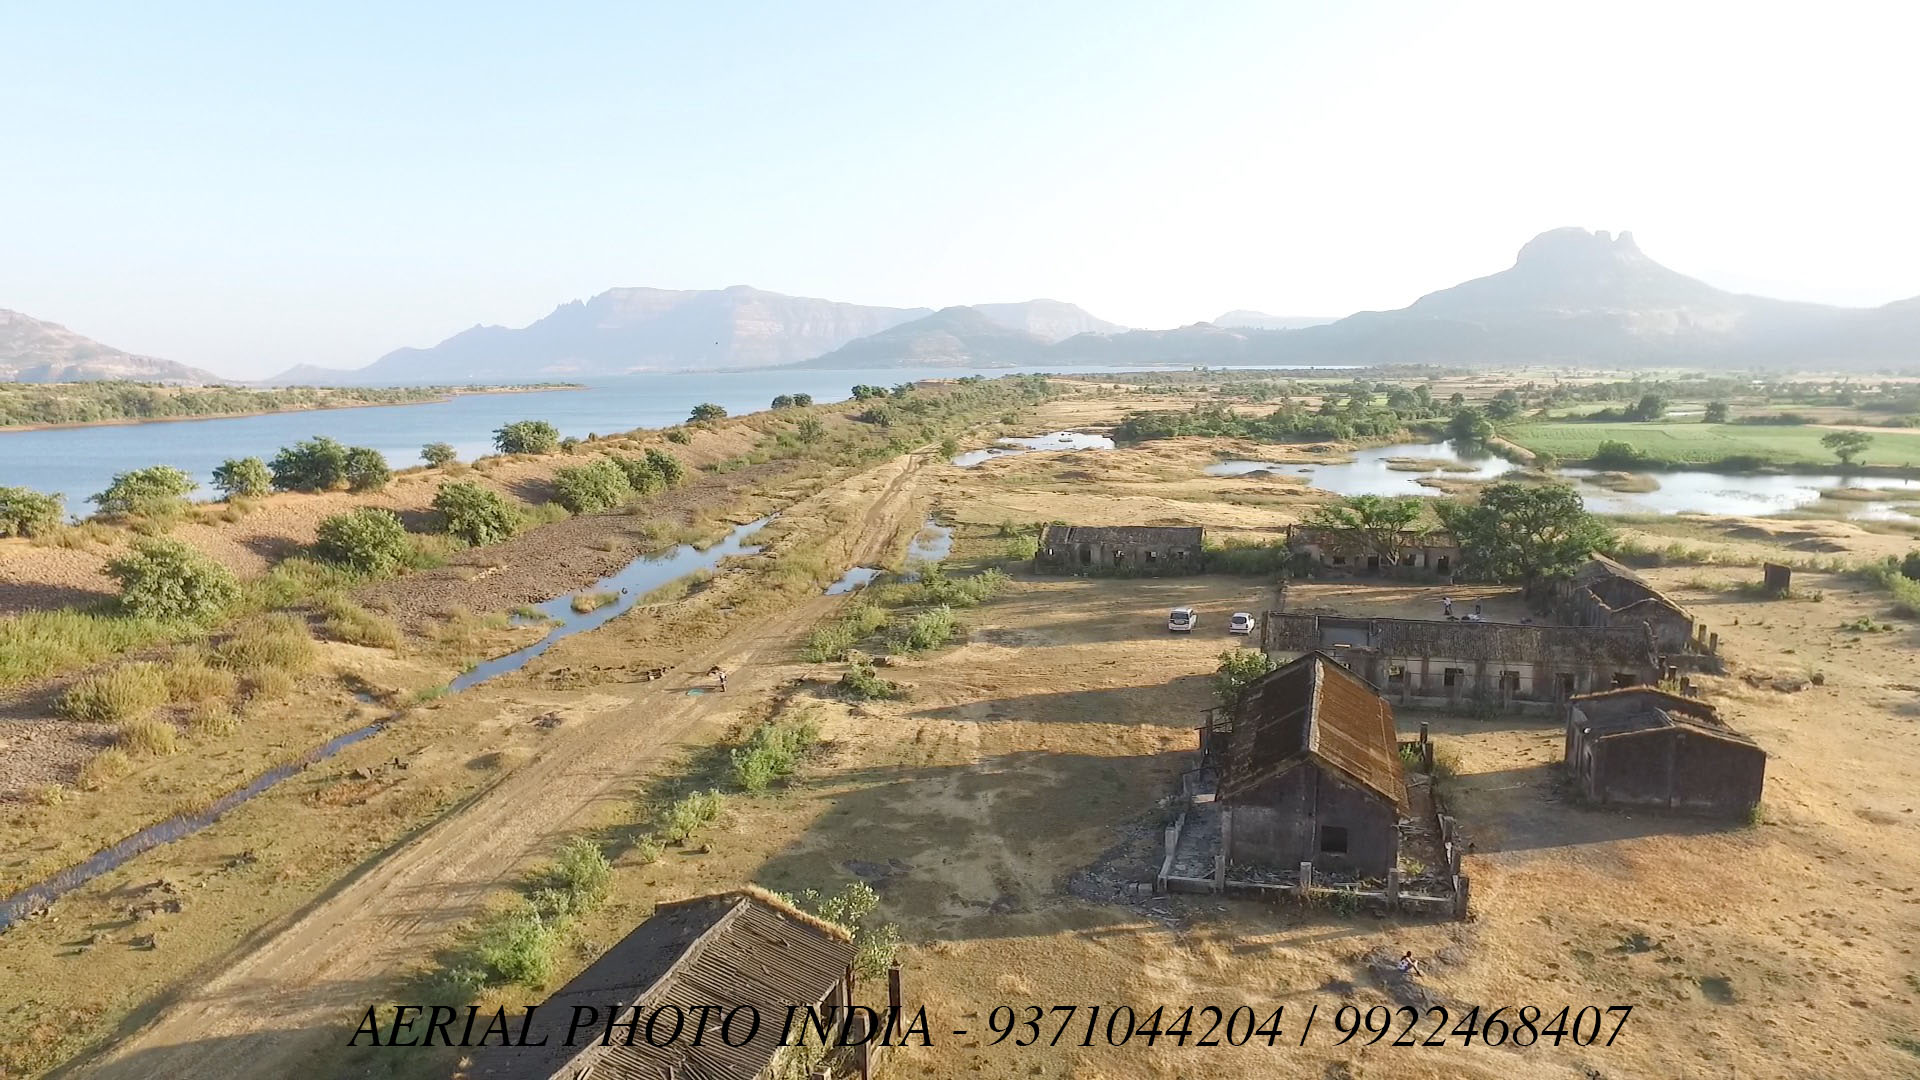 Aerial-Photography-Services-mumbai